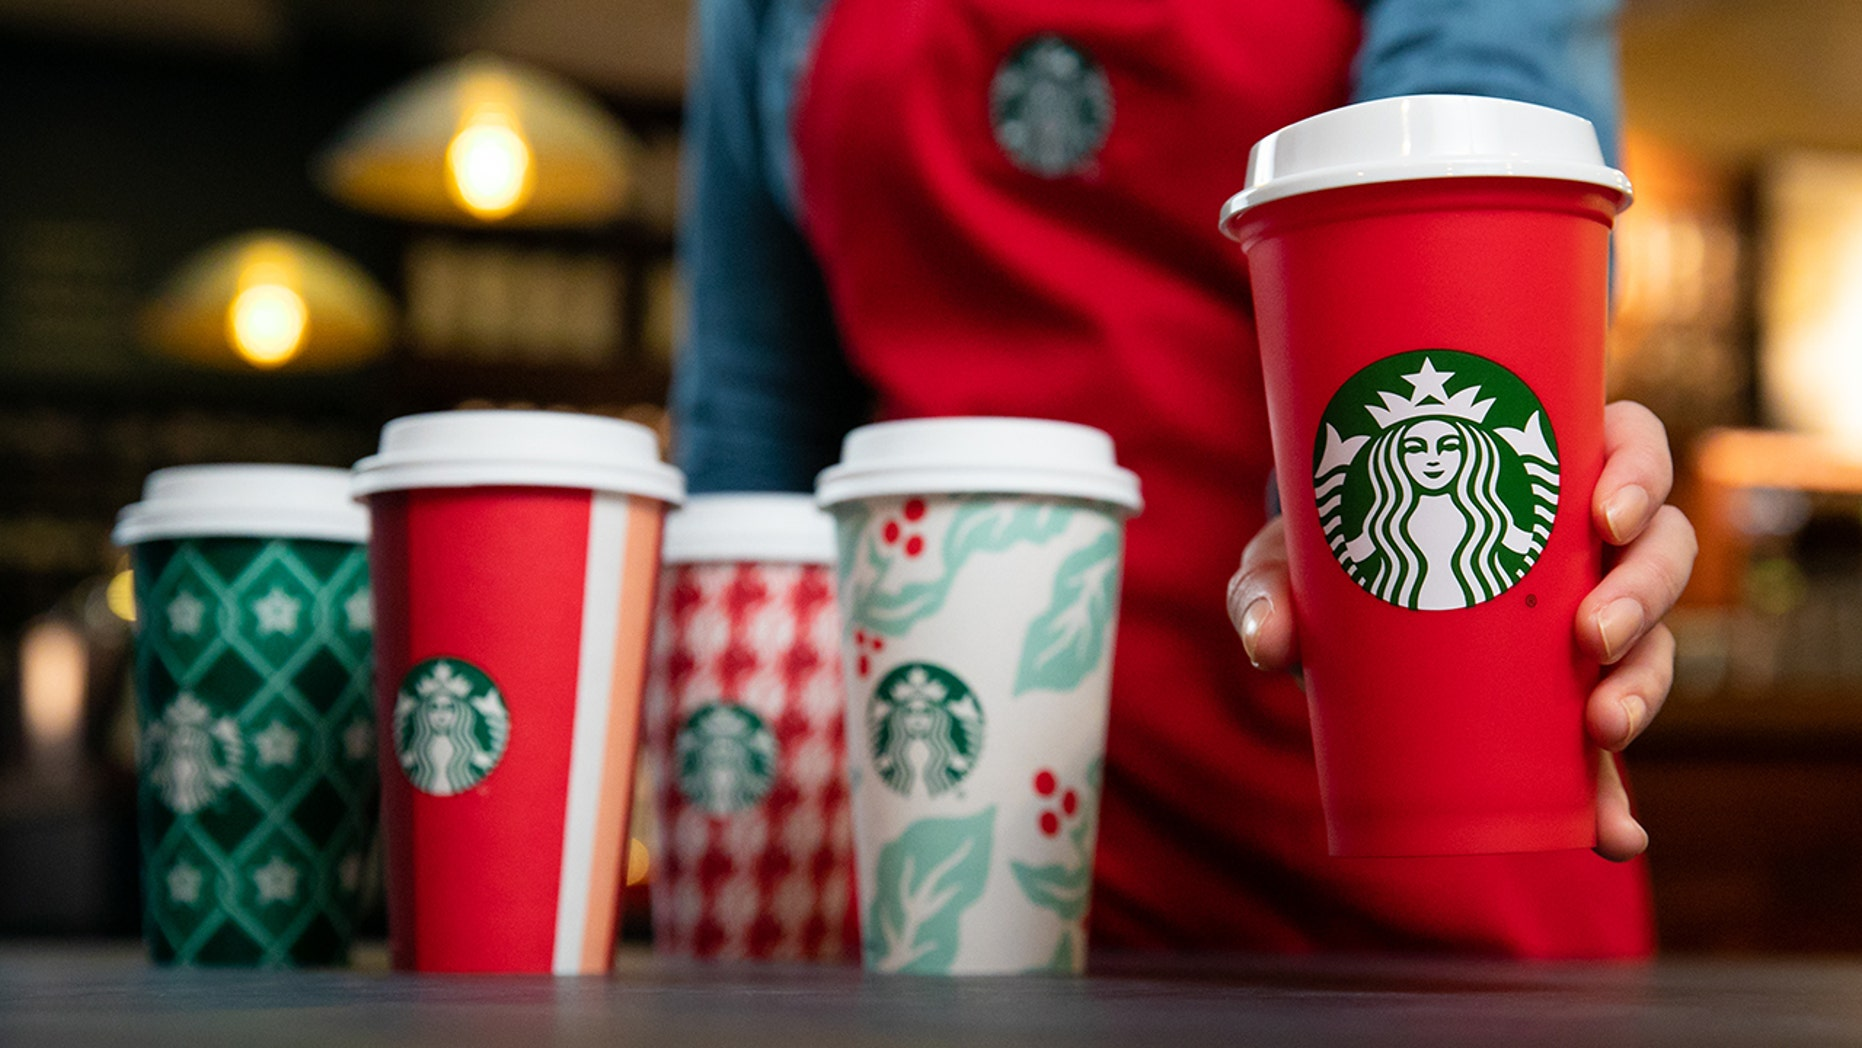 New Starbucks holiday cups mean it's officially Christmas